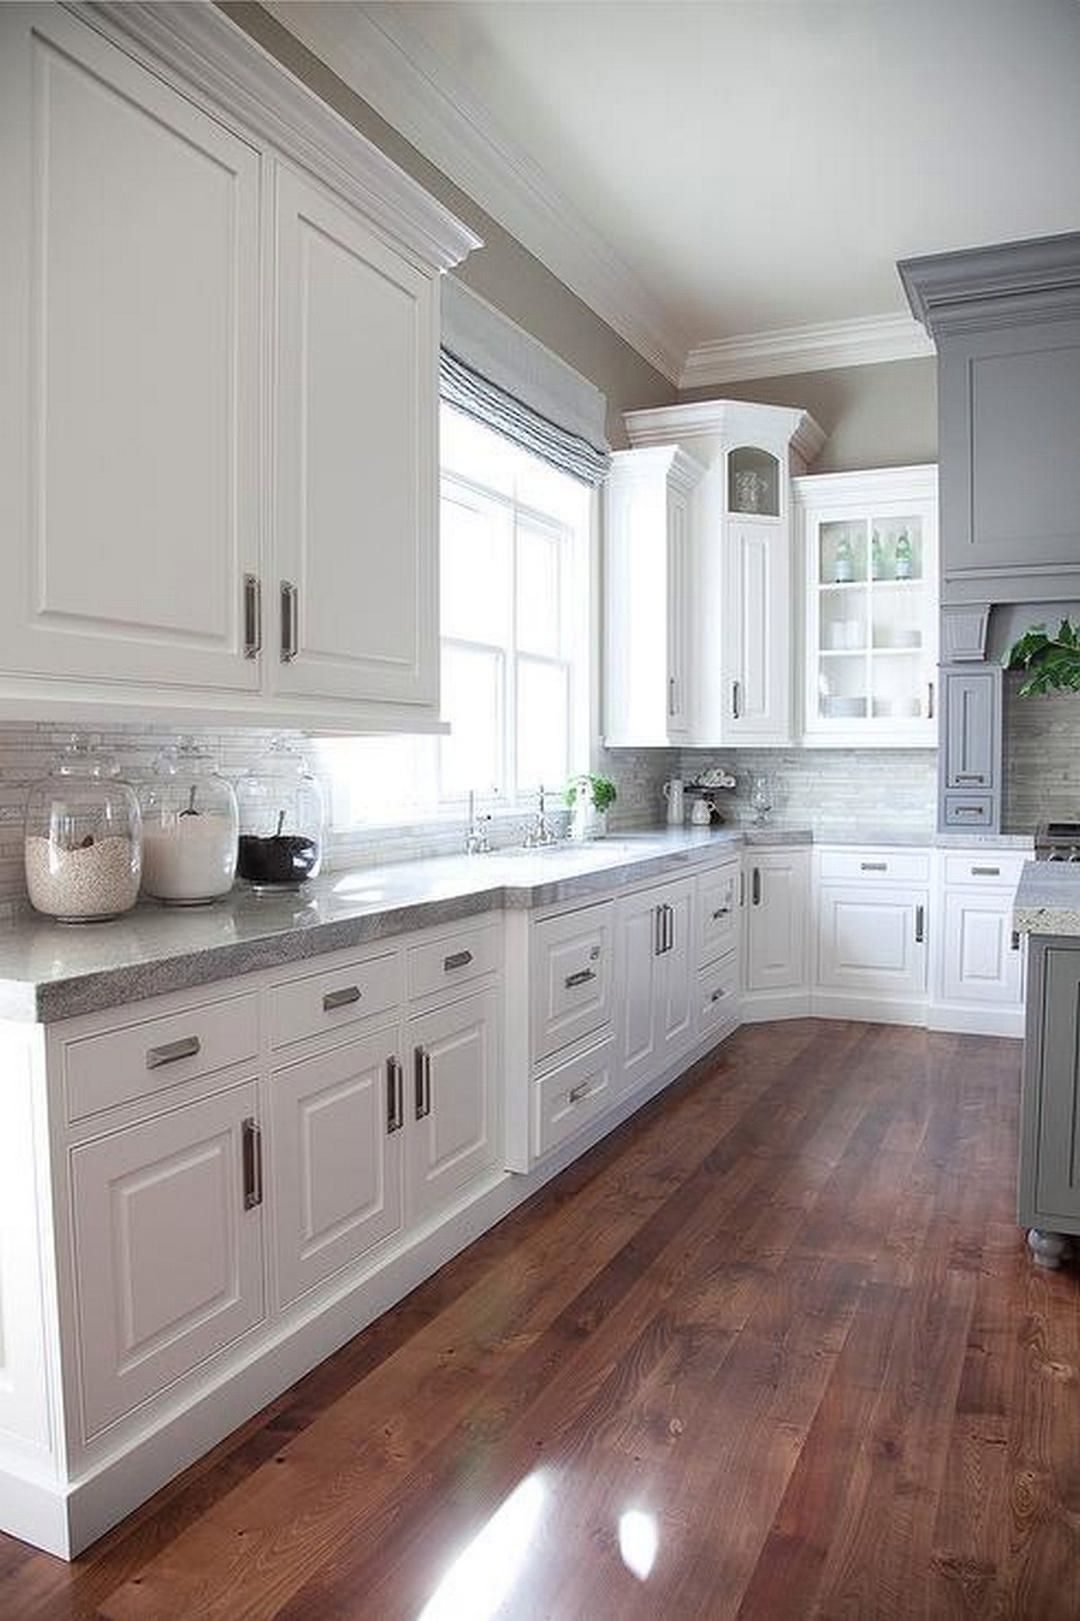 2019 Pretty Kitchens With White Cabinets   Kitchen Cabinet Lighting Ideas  Check More At Http: